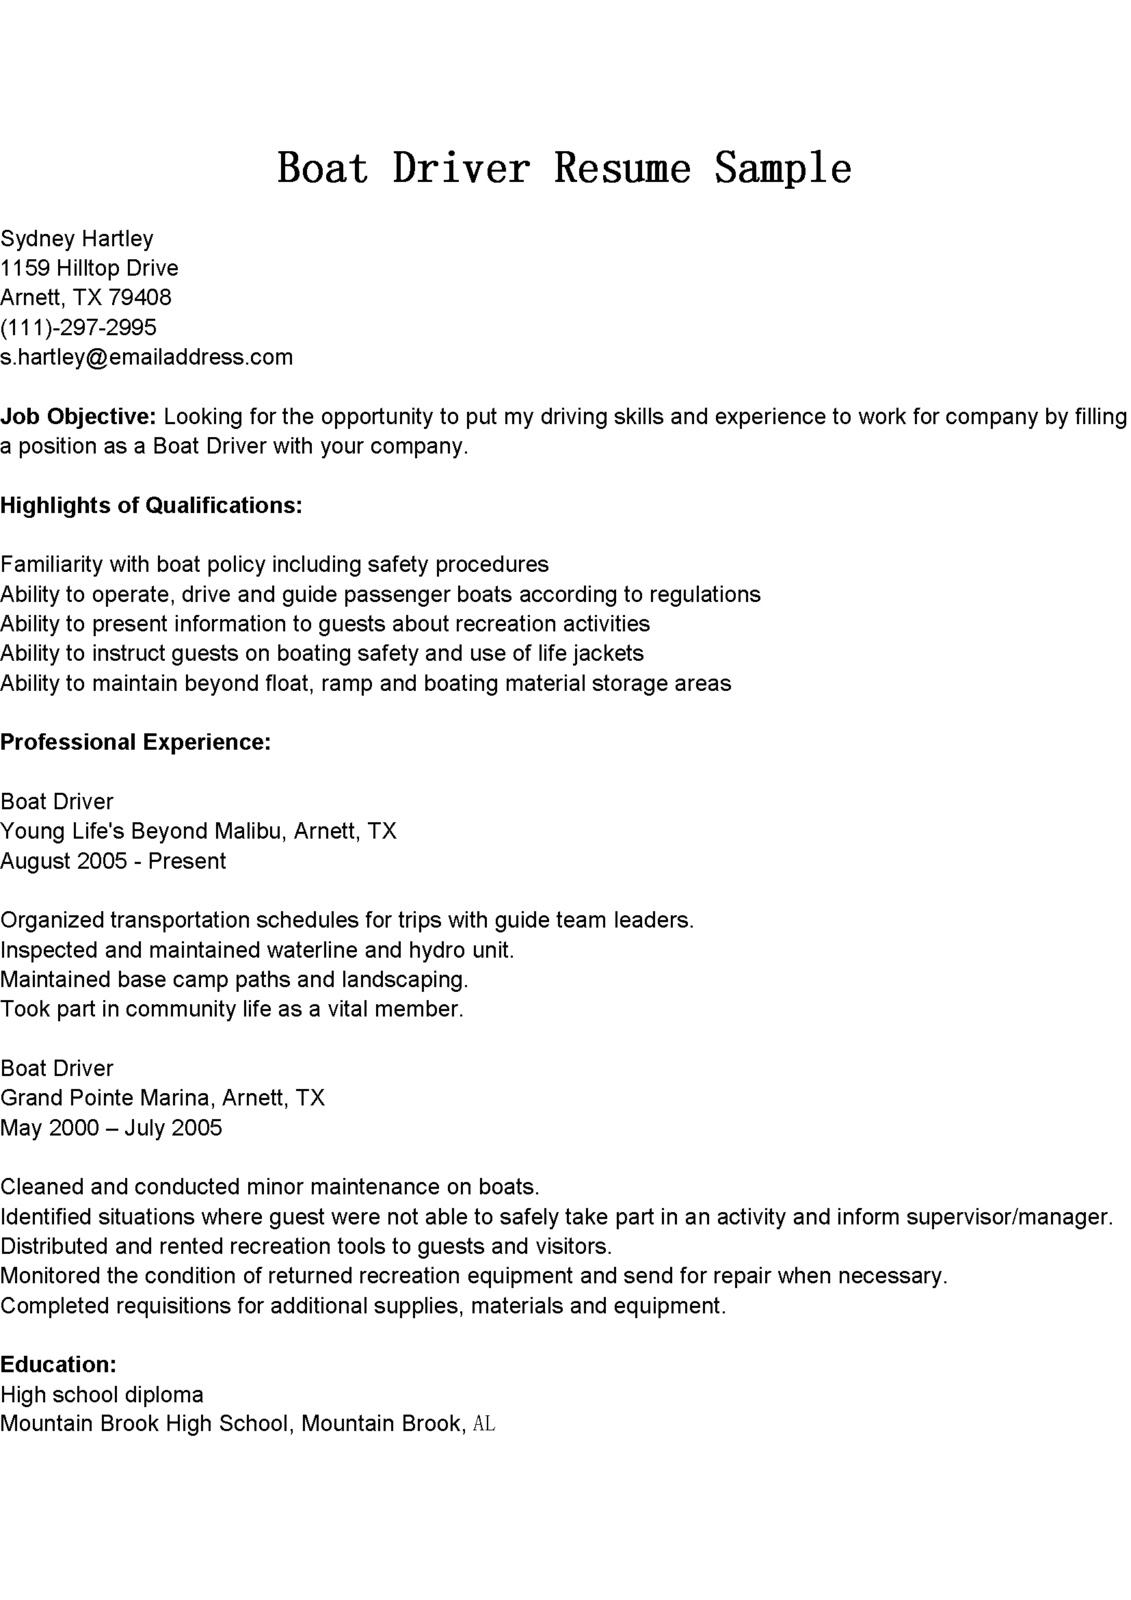 driver resumes boat resume sample responsibilities words for collaborate unc template Resume Driver Responsibilities Resume